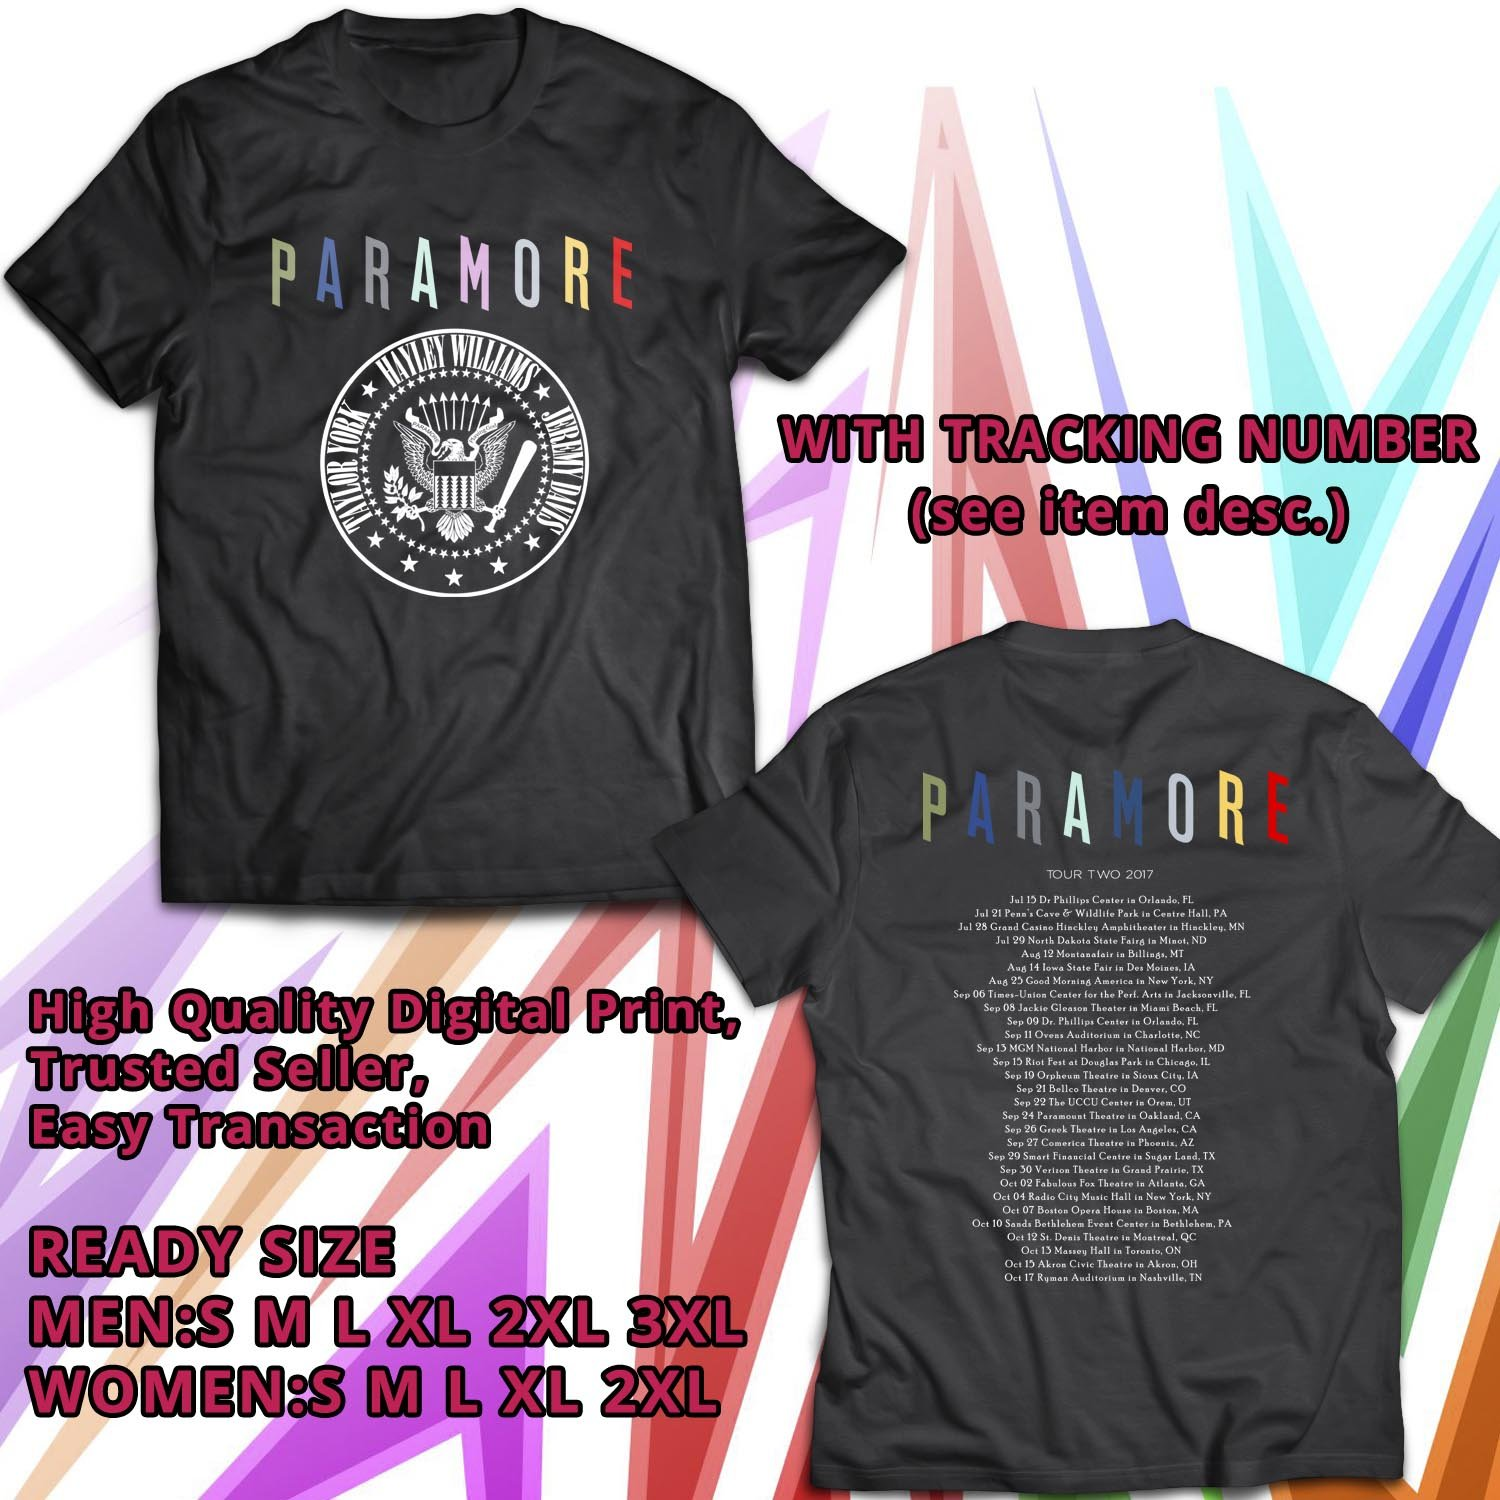 HITS PARAMORE AFTER LAUGHTER ALBUM TOUR TWO 2017 BLACK TEE'S 2SIDE MAN WOMEN ASTR 889